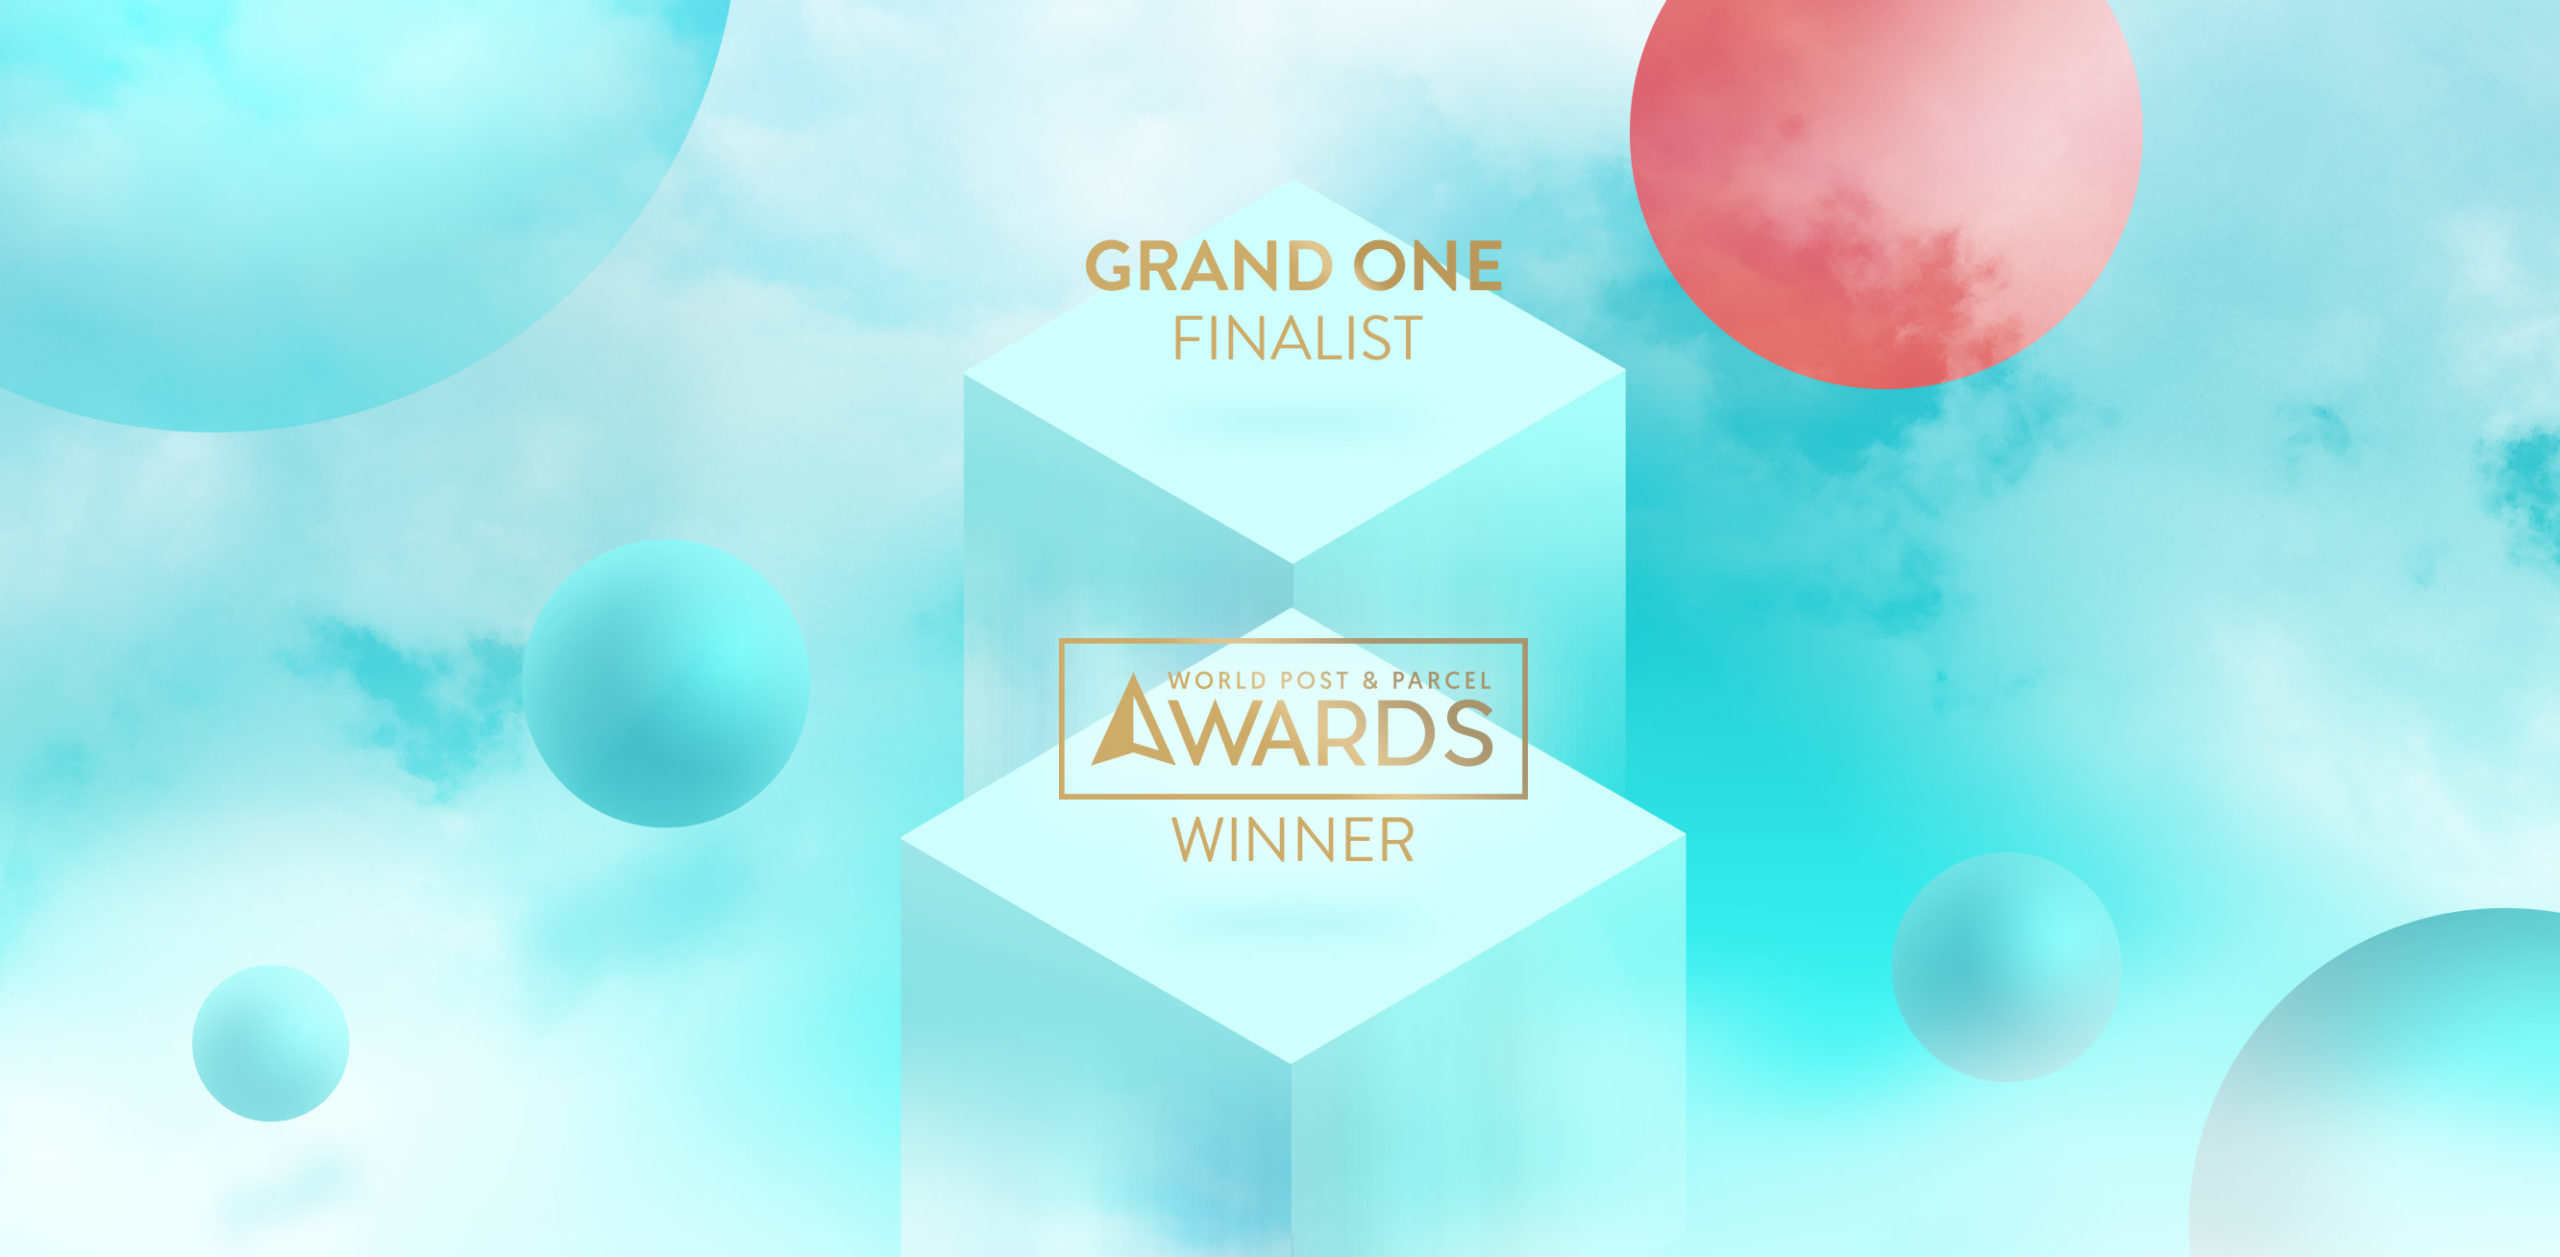 Omaposti was Grand One Finalist and won the World post & parcel awards.